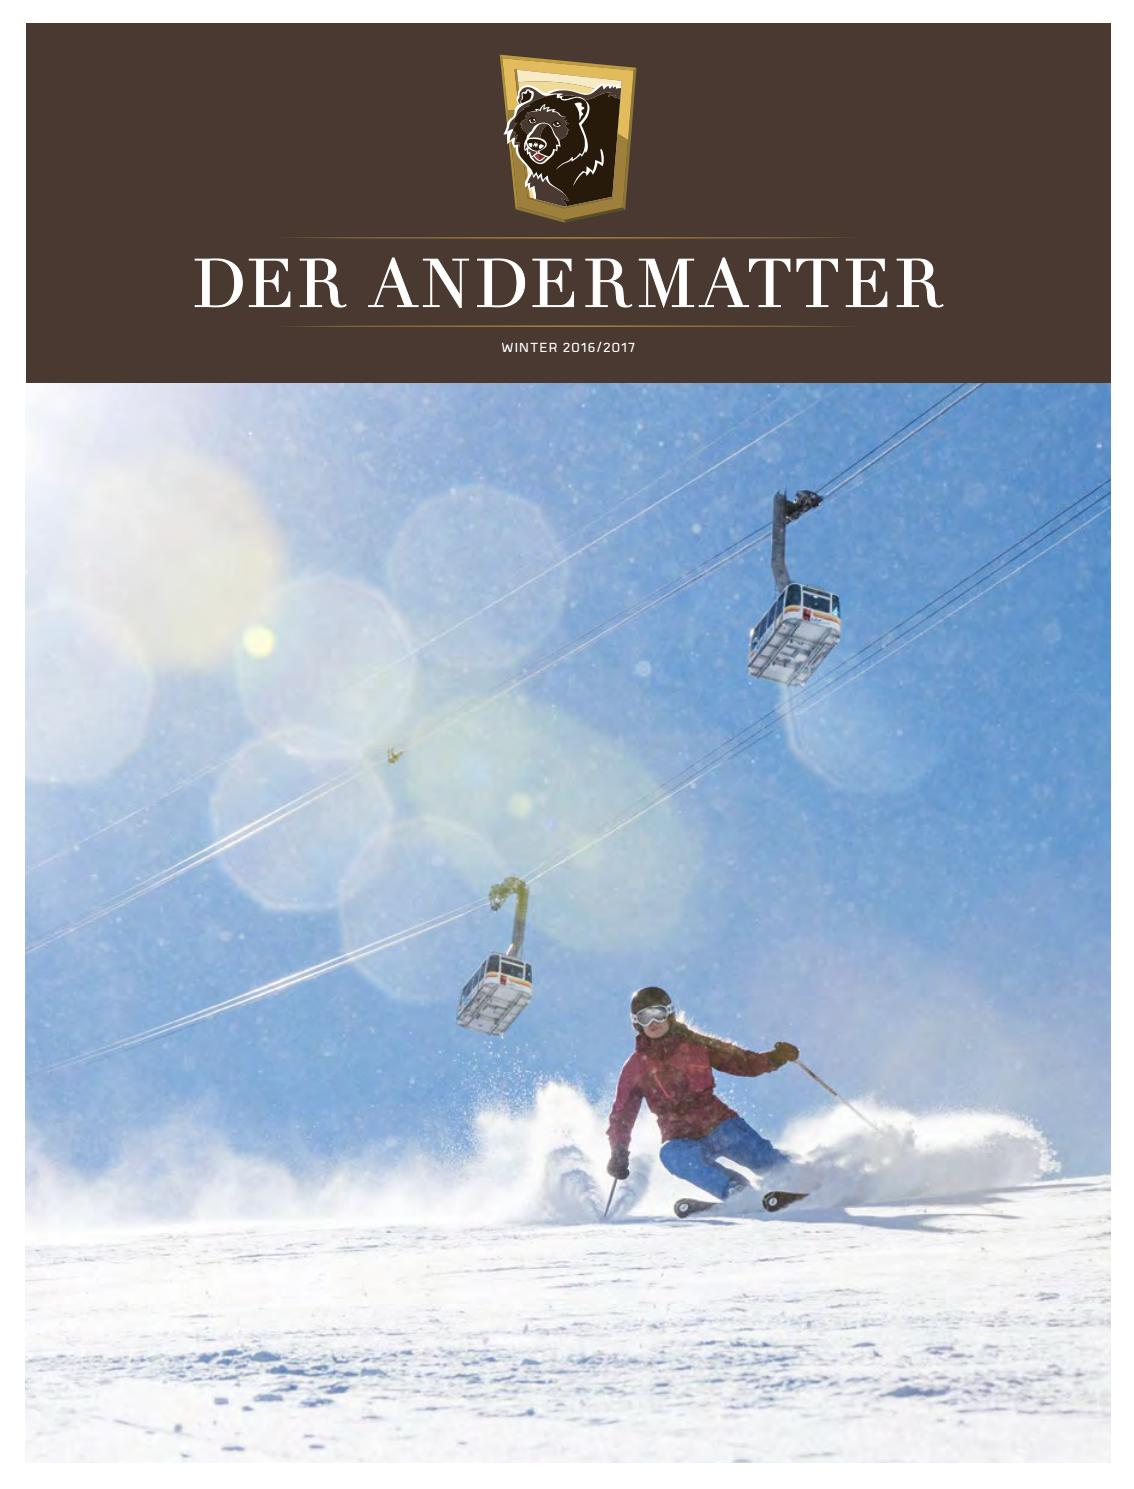 DER ANDERMATTER – Winter 2016/2017 by tinto AG - issuu